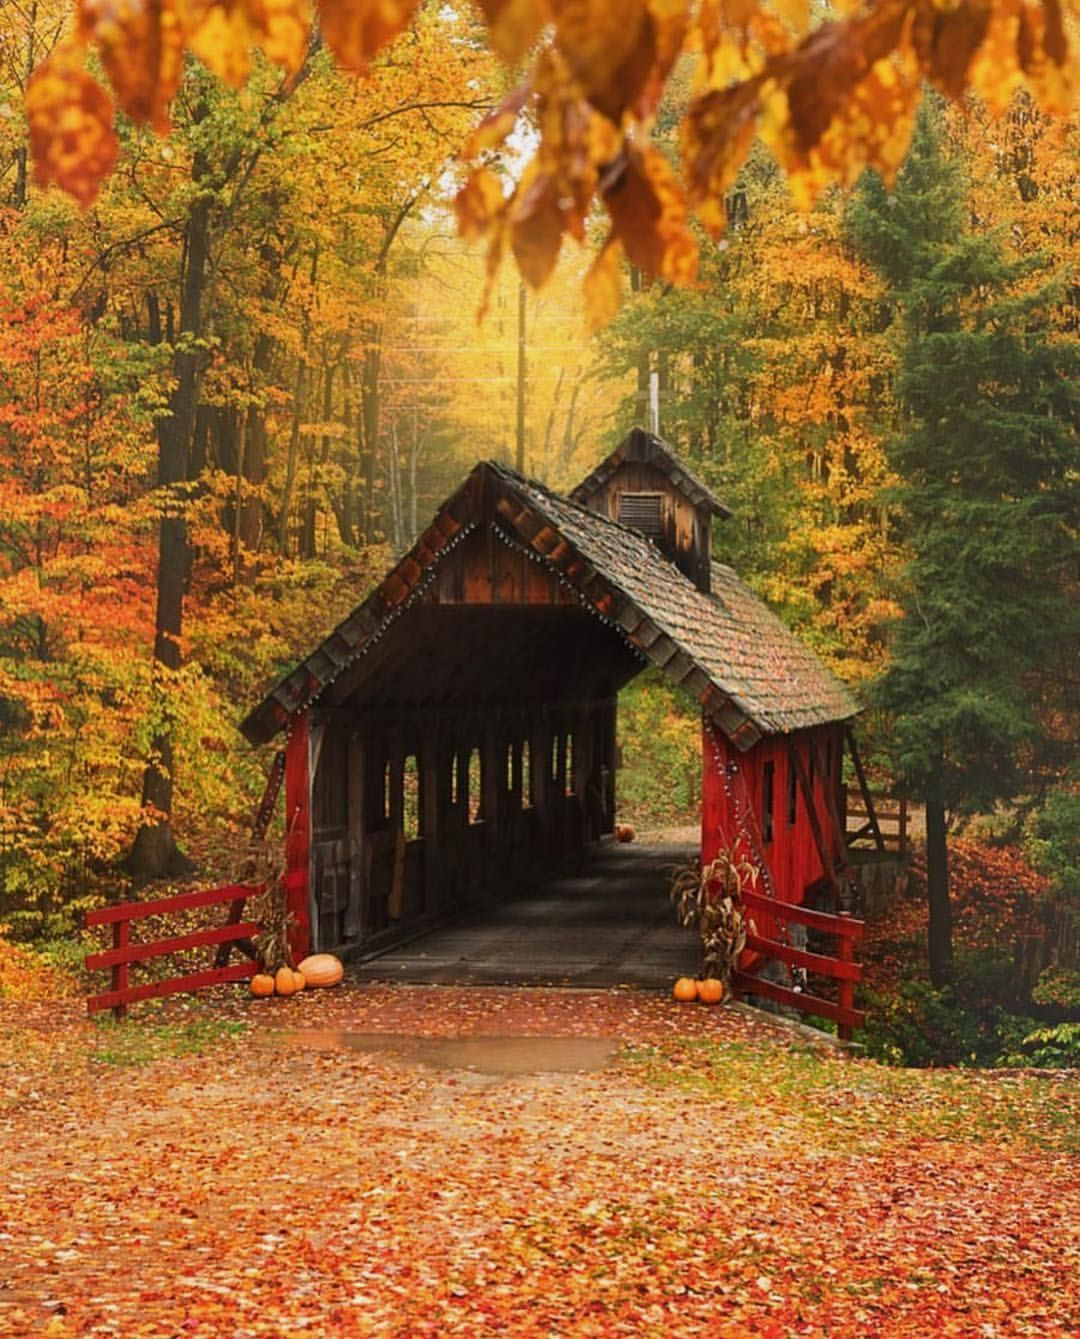 #autumnscenes